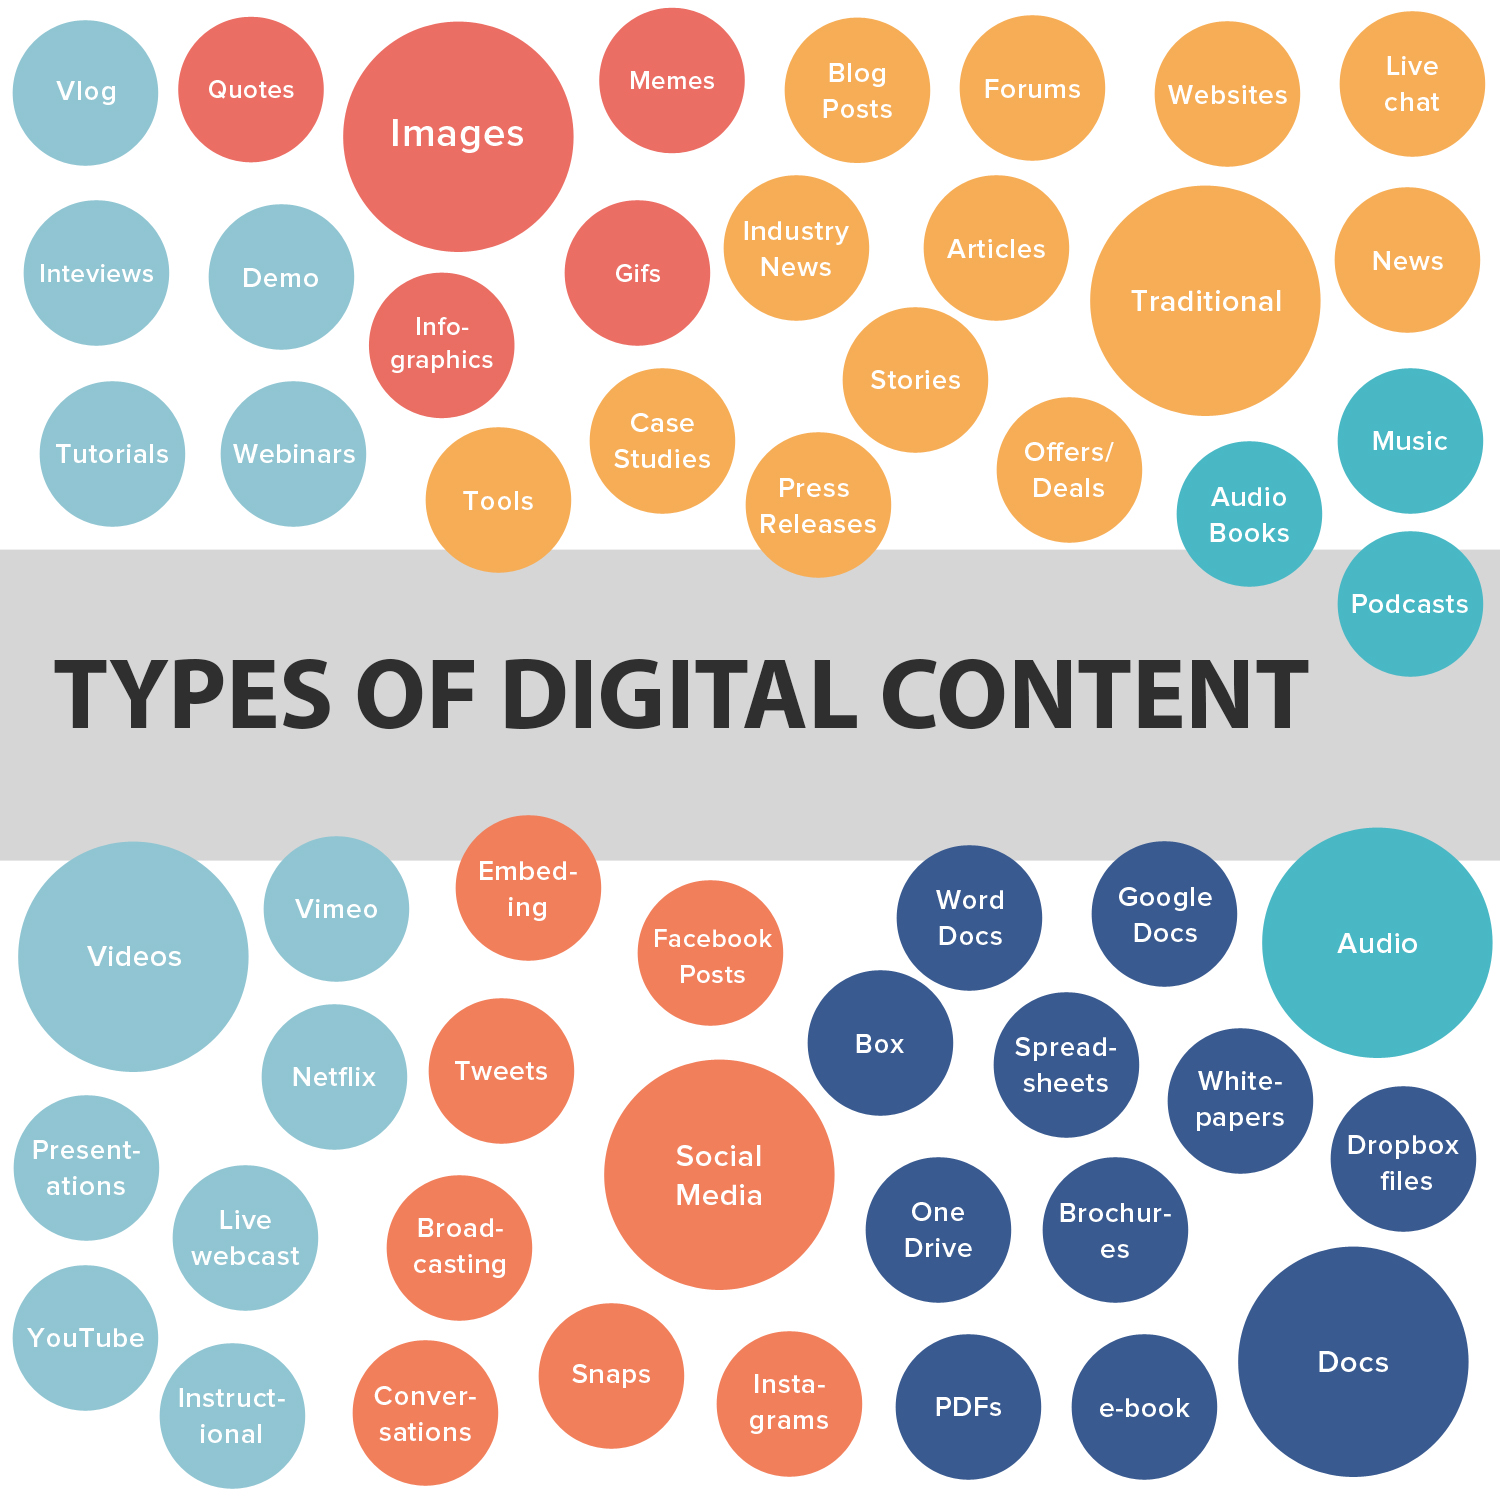 Different Types of Digital Content